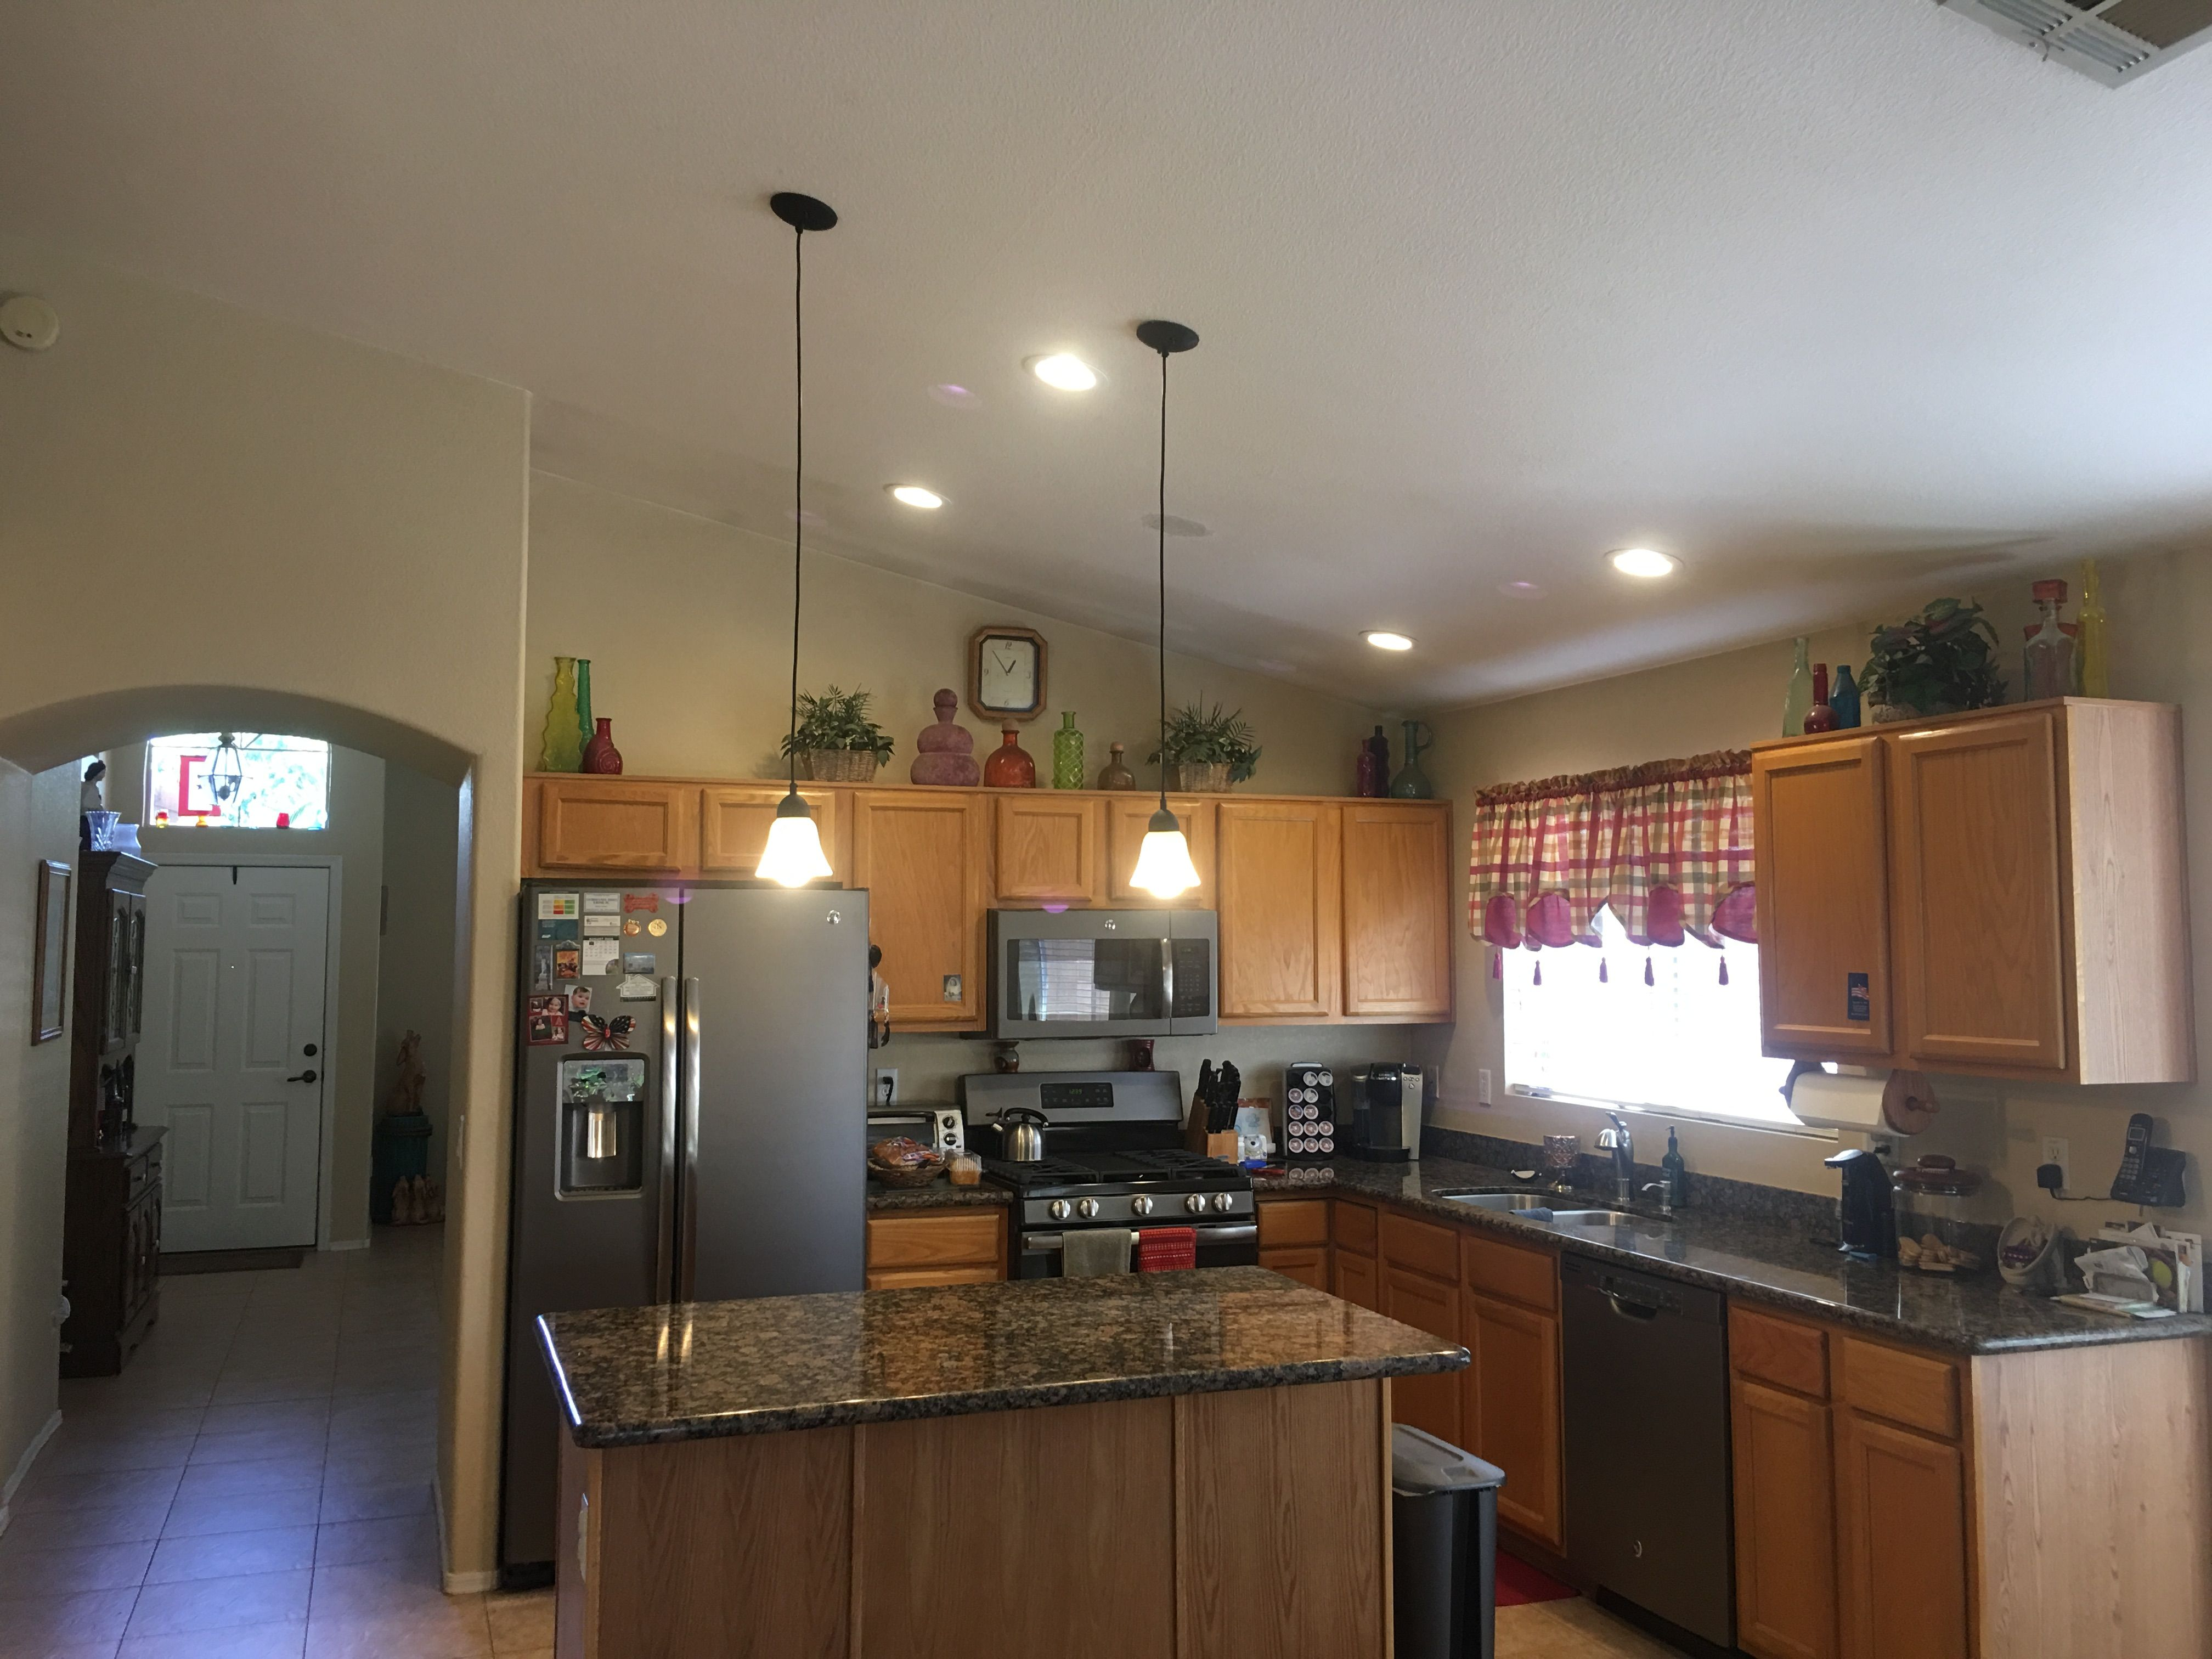 pendant lighting for recessed lights. Installed 4 X 6- Inch Recessed Lights With A Dimmer Switch And 2 Pendant Lighting For